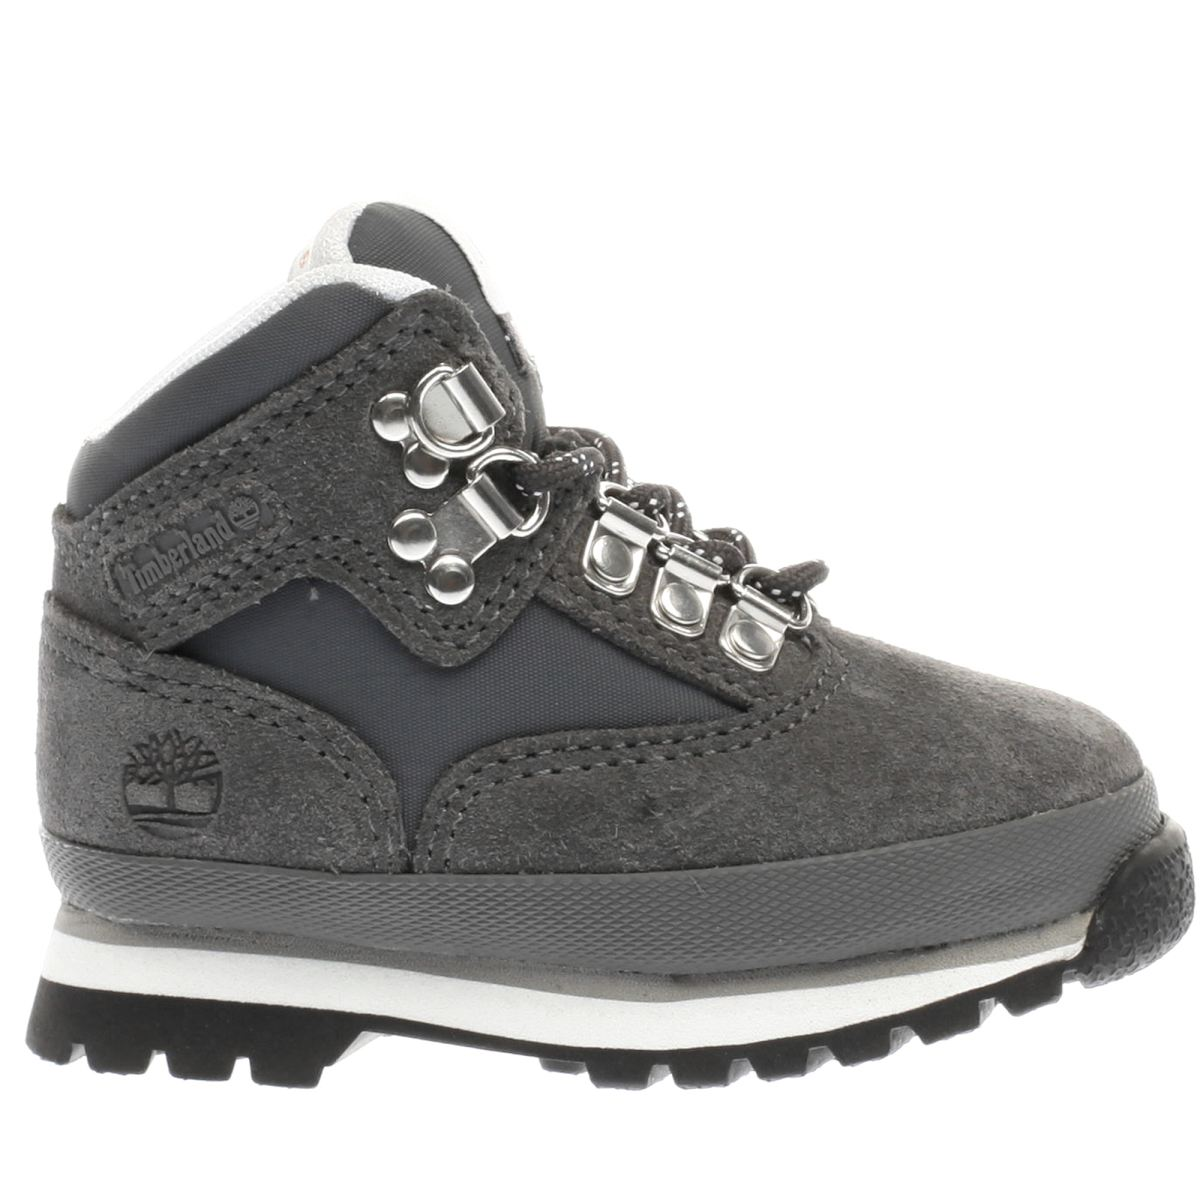 timberland grey euro hiker Boys Toddler Boots